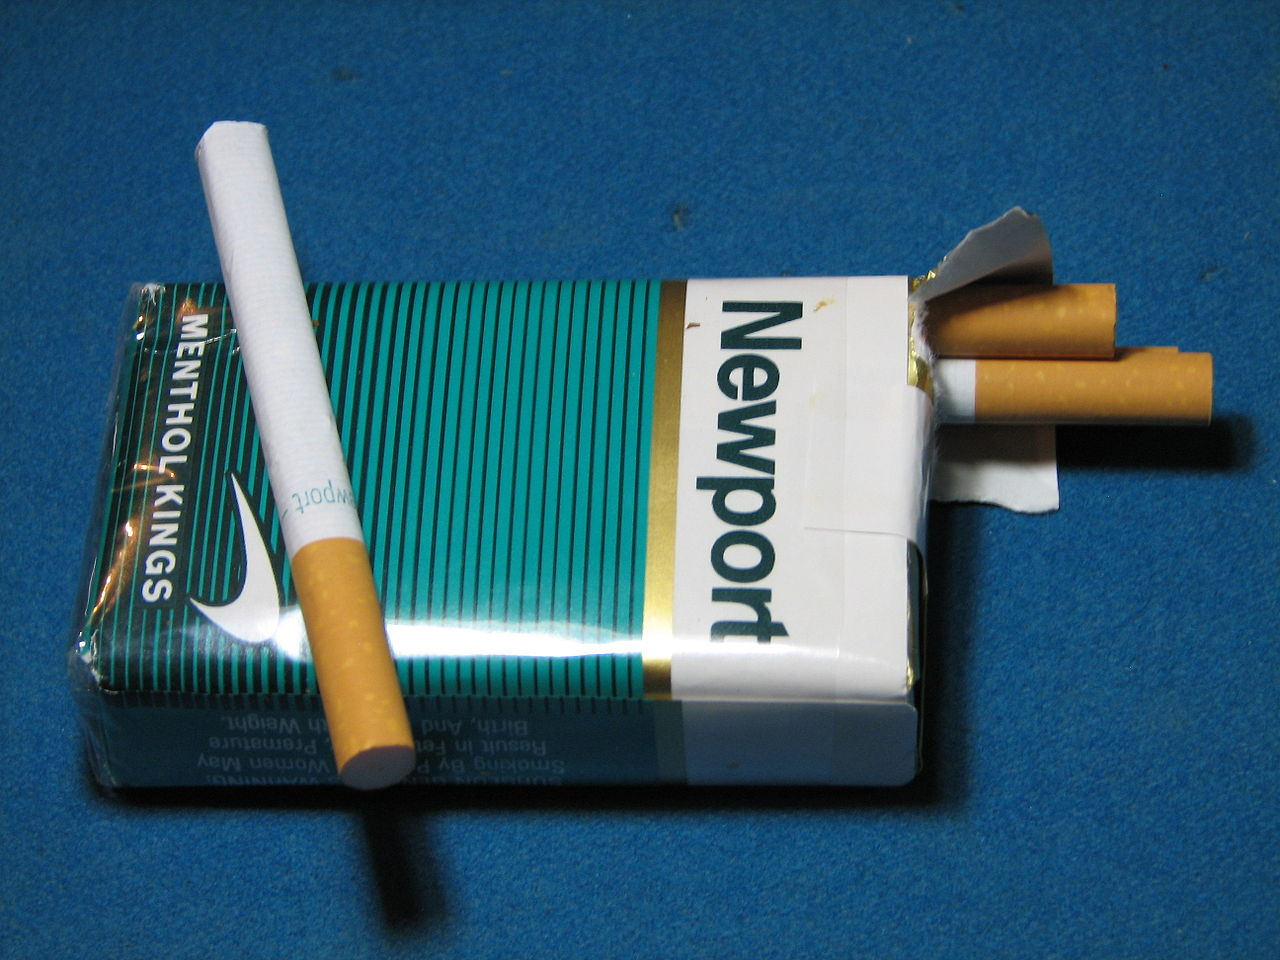 Where can you buy flavored cigarettes Marlboro in Dublin